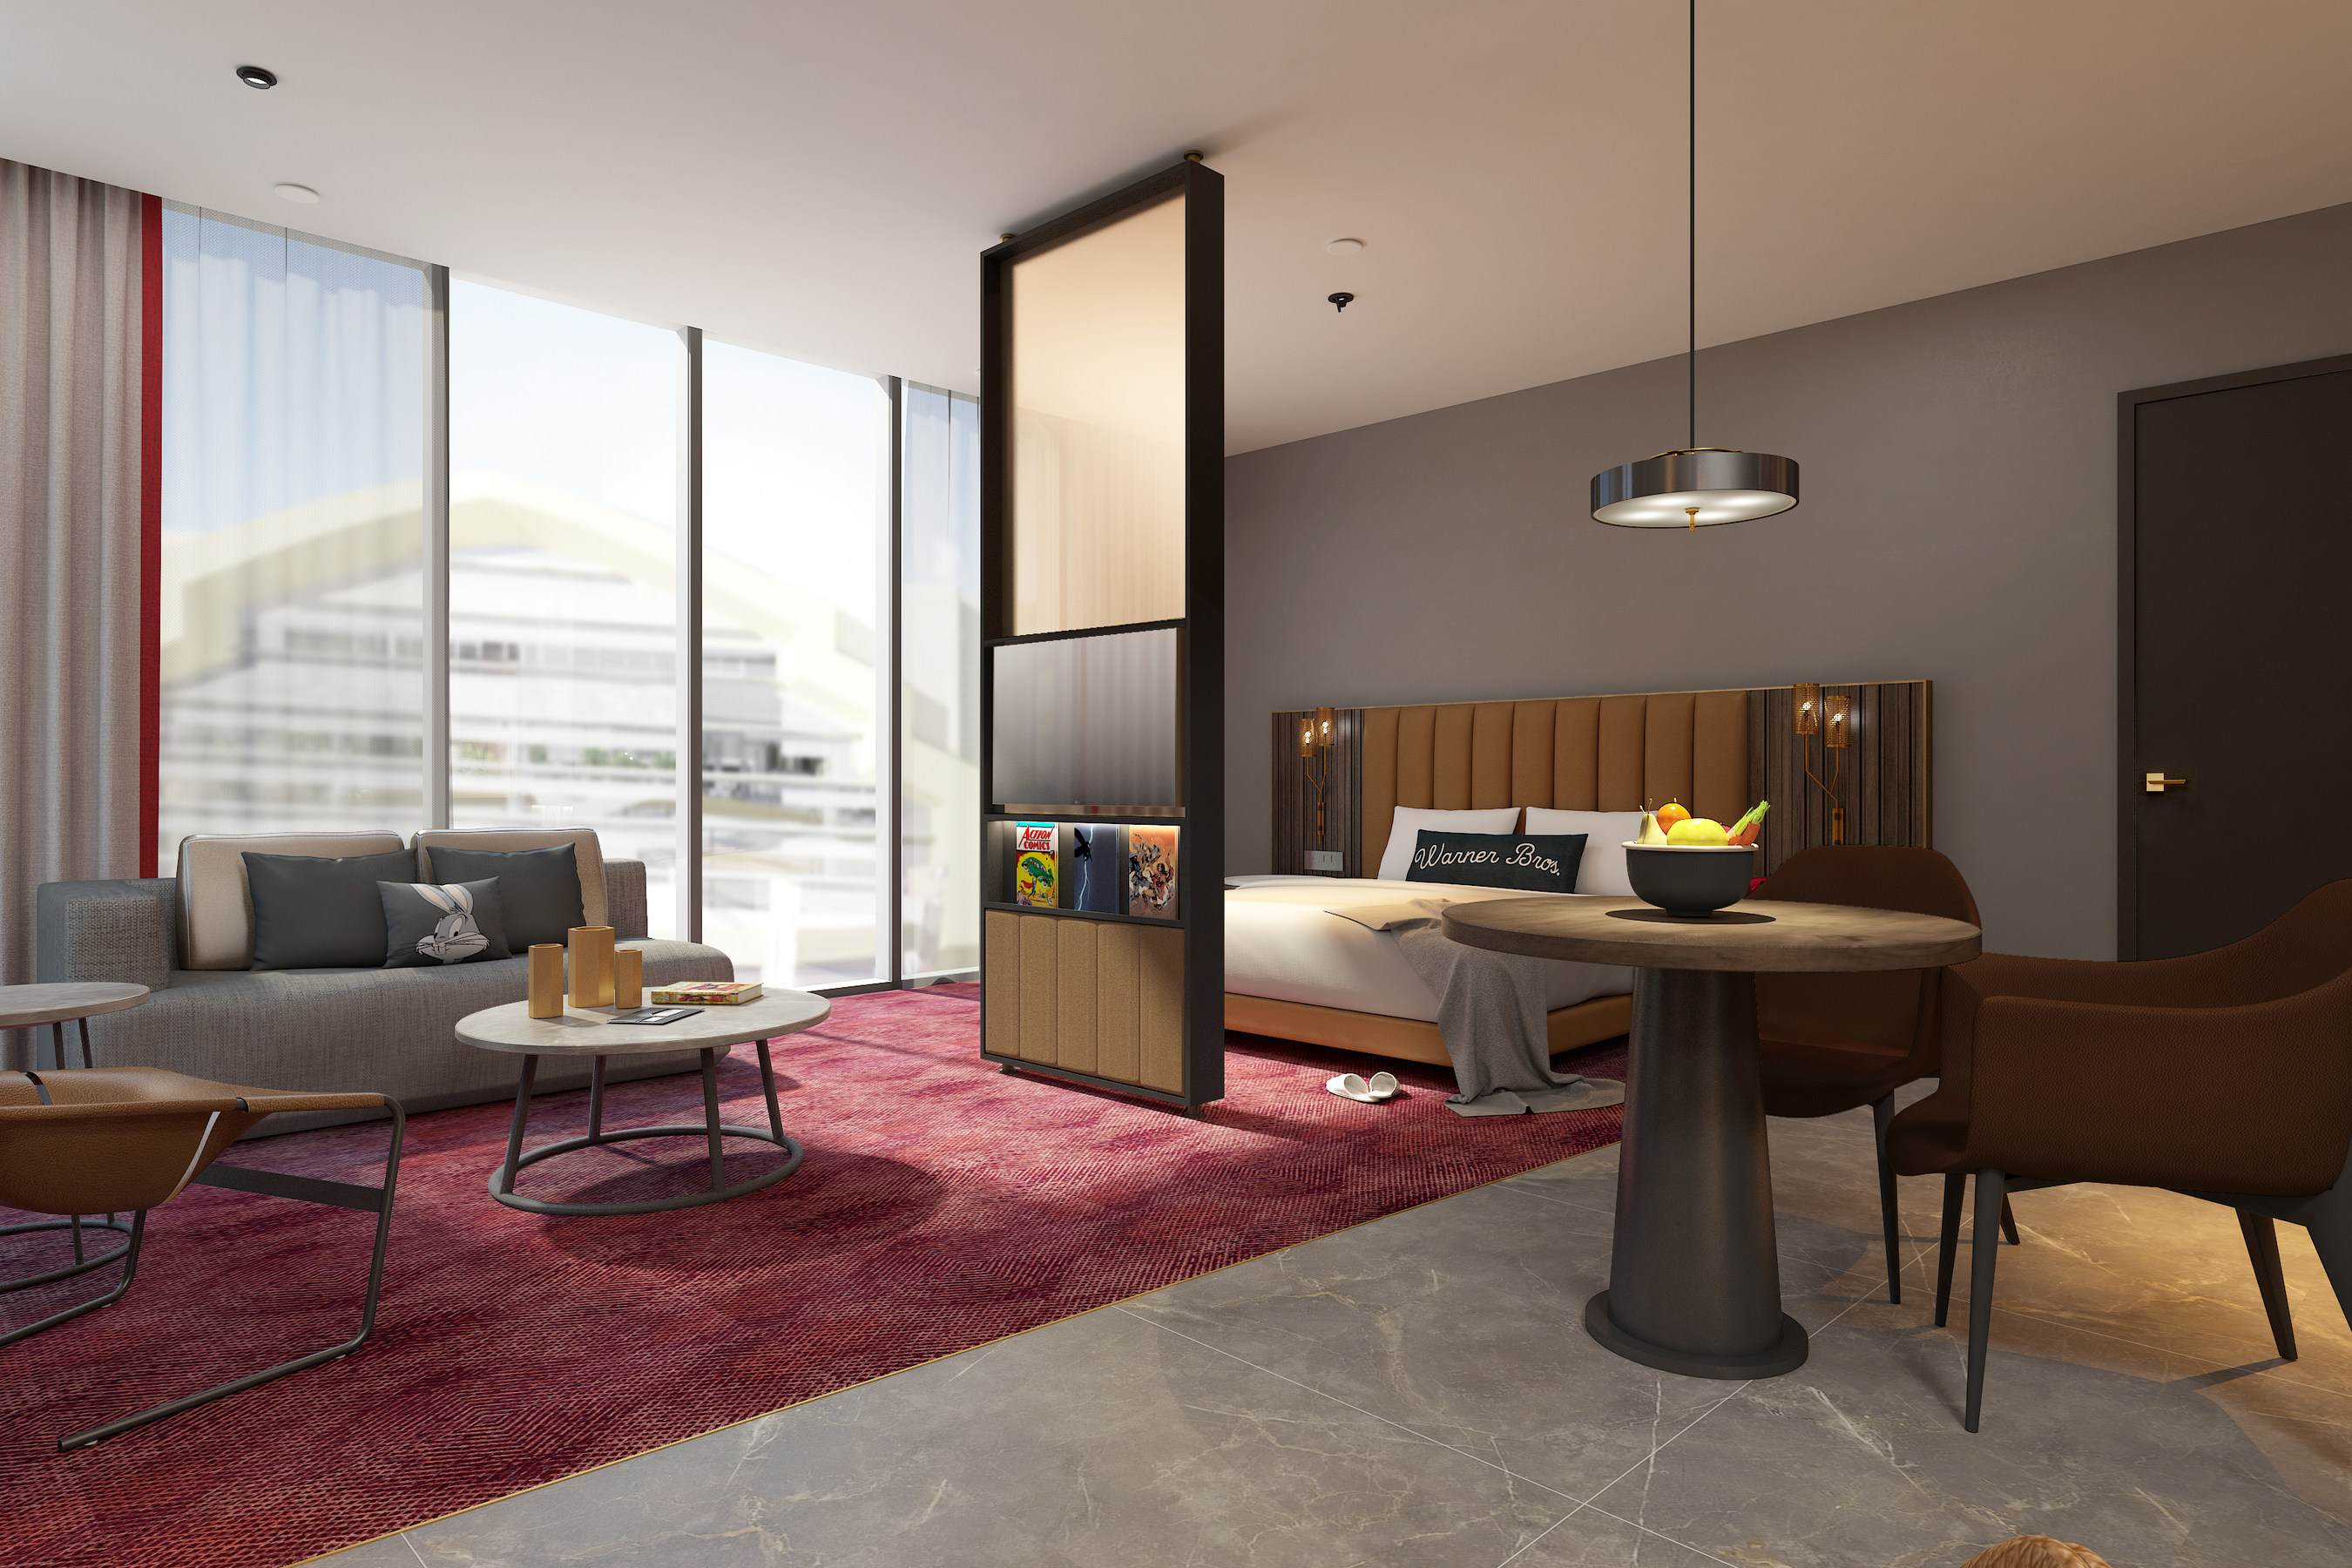 Miral And Warner Bros To Open World S First Warner Bros Hotel On Yas Island Abu Dhabi In 2021